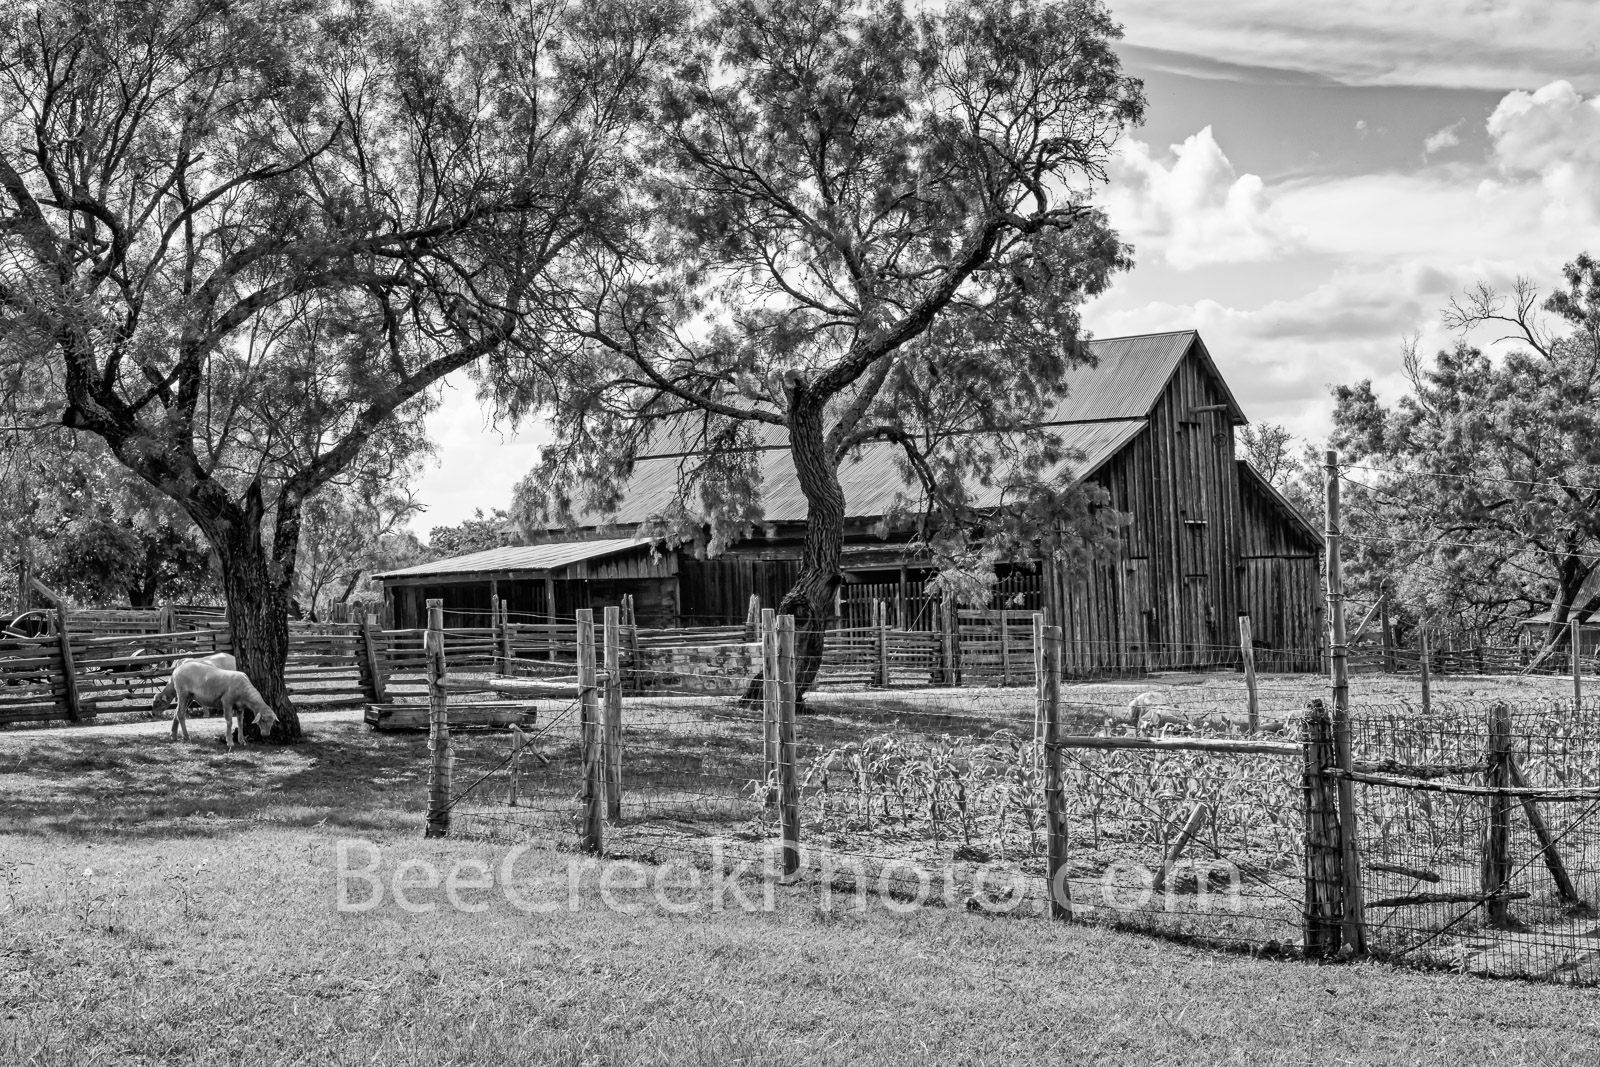 Rural Texas Hill Country Farm BW - A rural Texas farm with this vintage barn, crops, and live stock loose. This is a working...